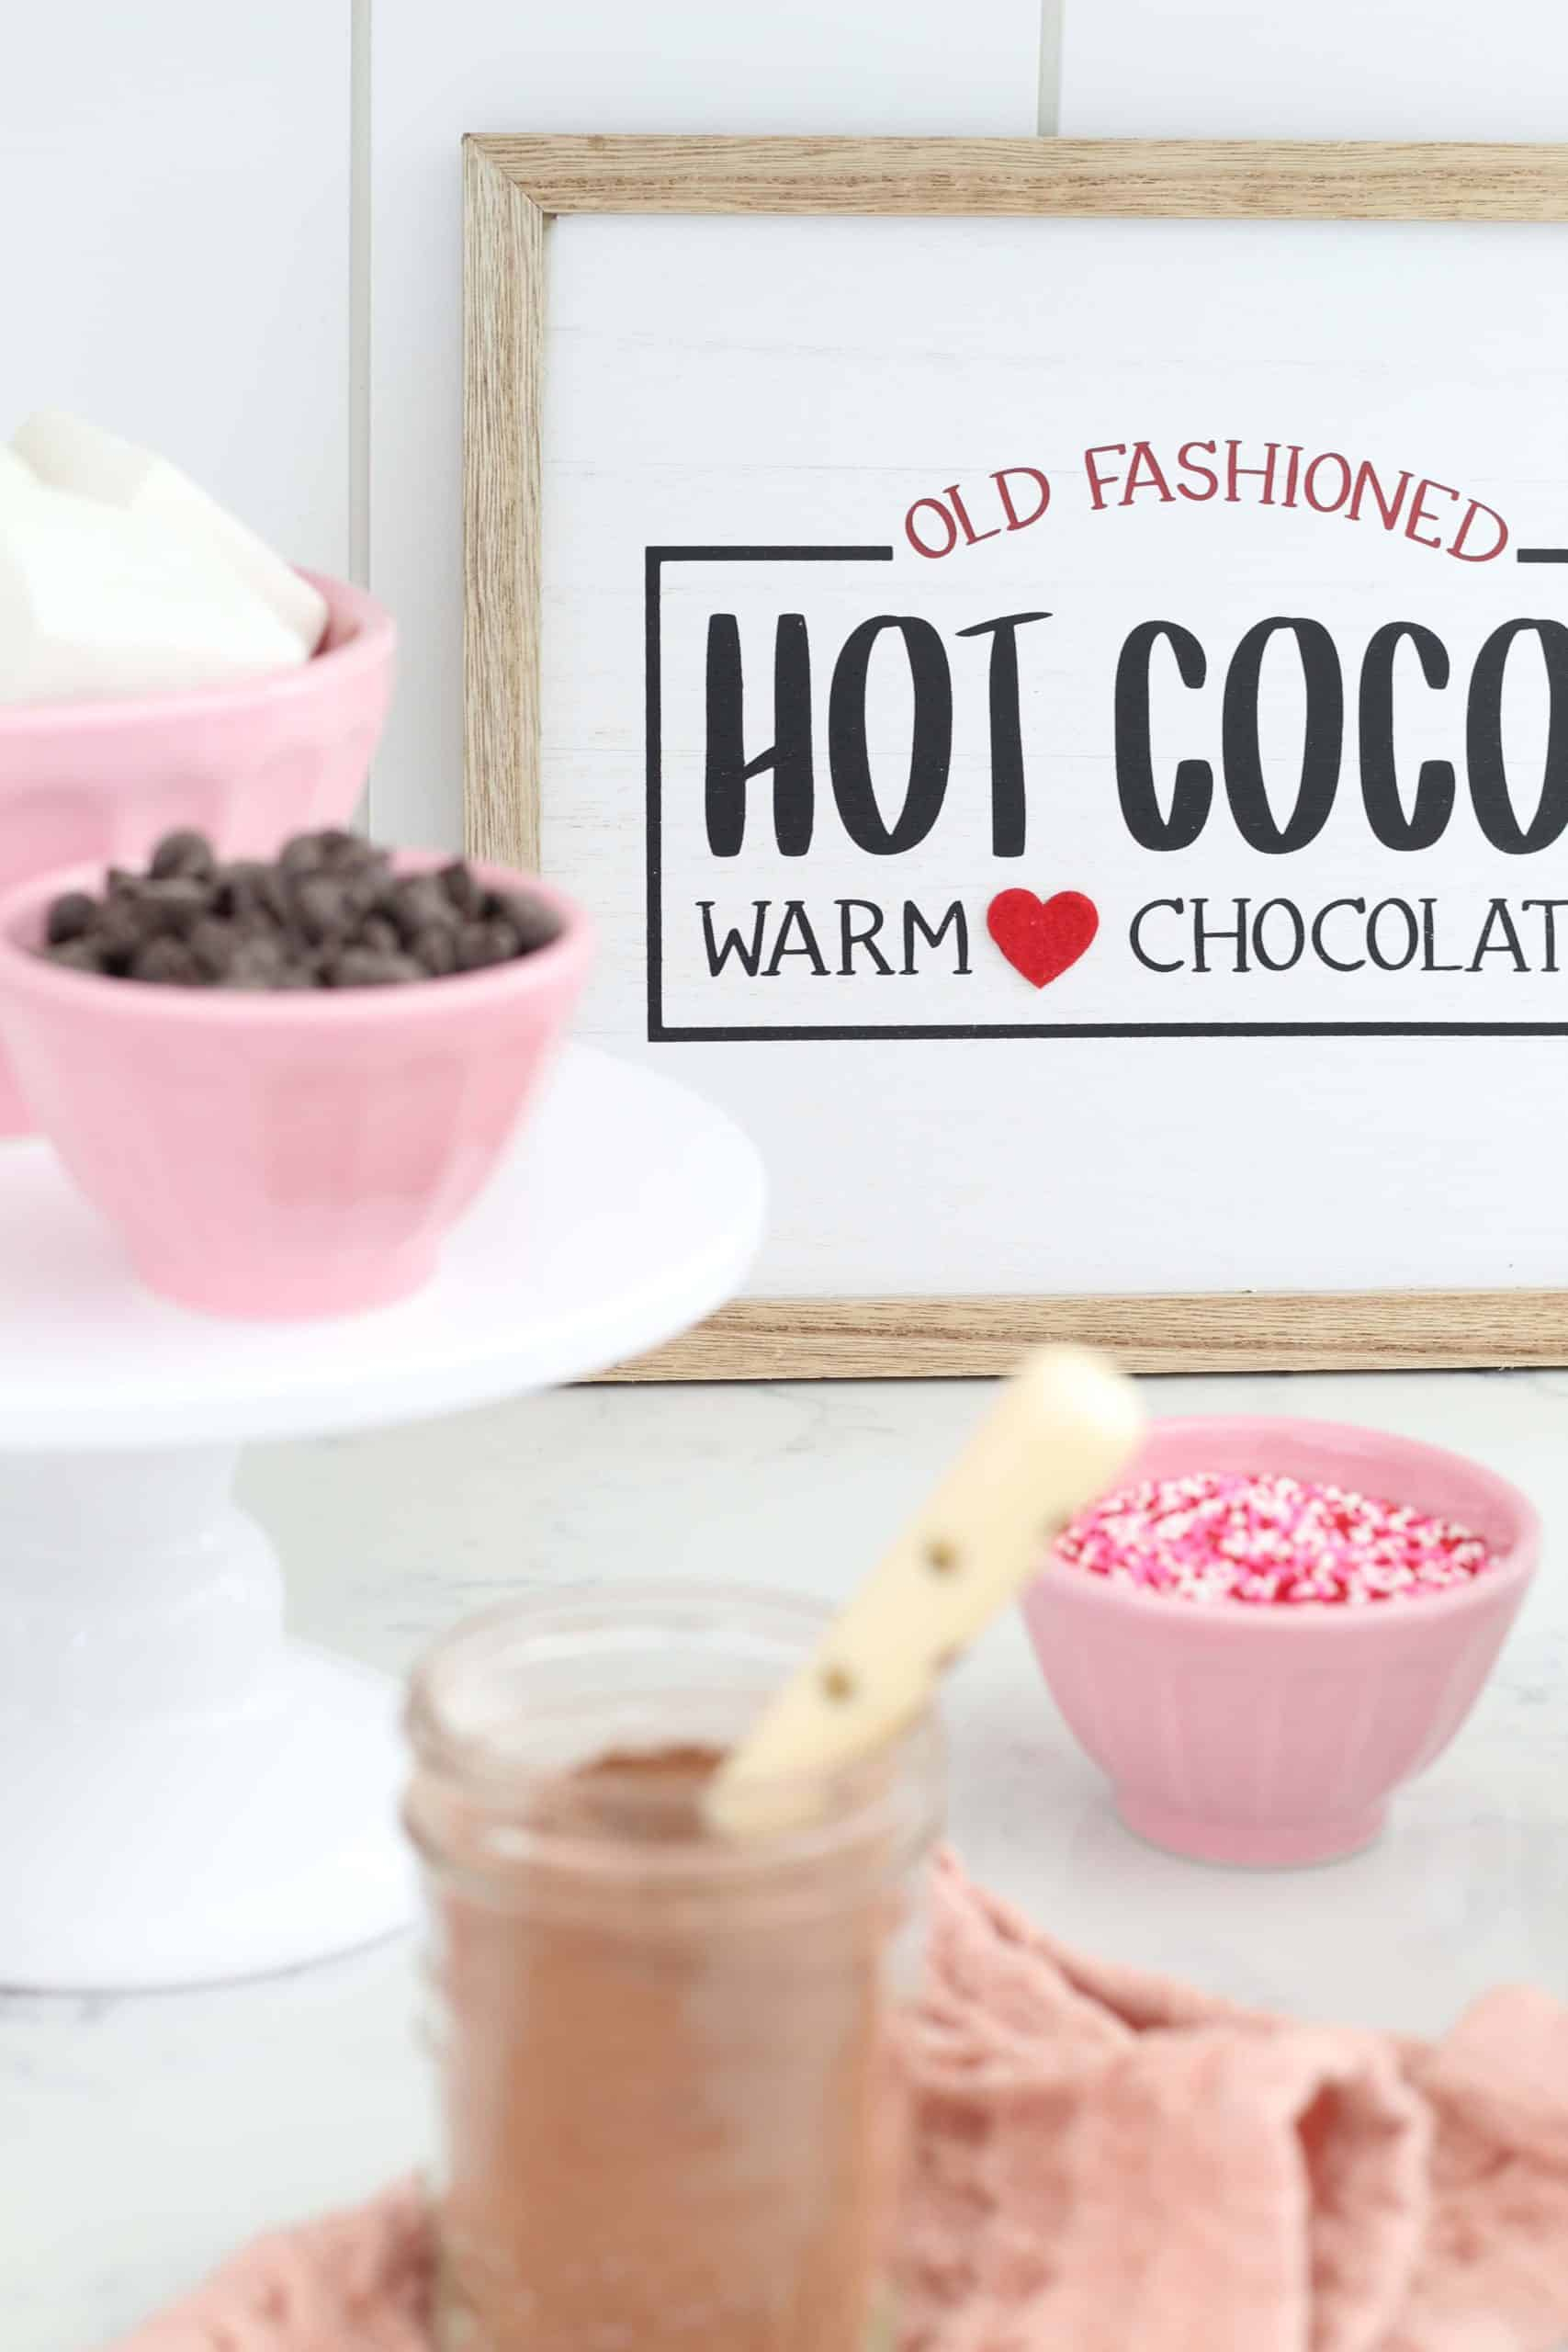 hot cocoa bar sign, pink anthropologie bowls, white cake stand